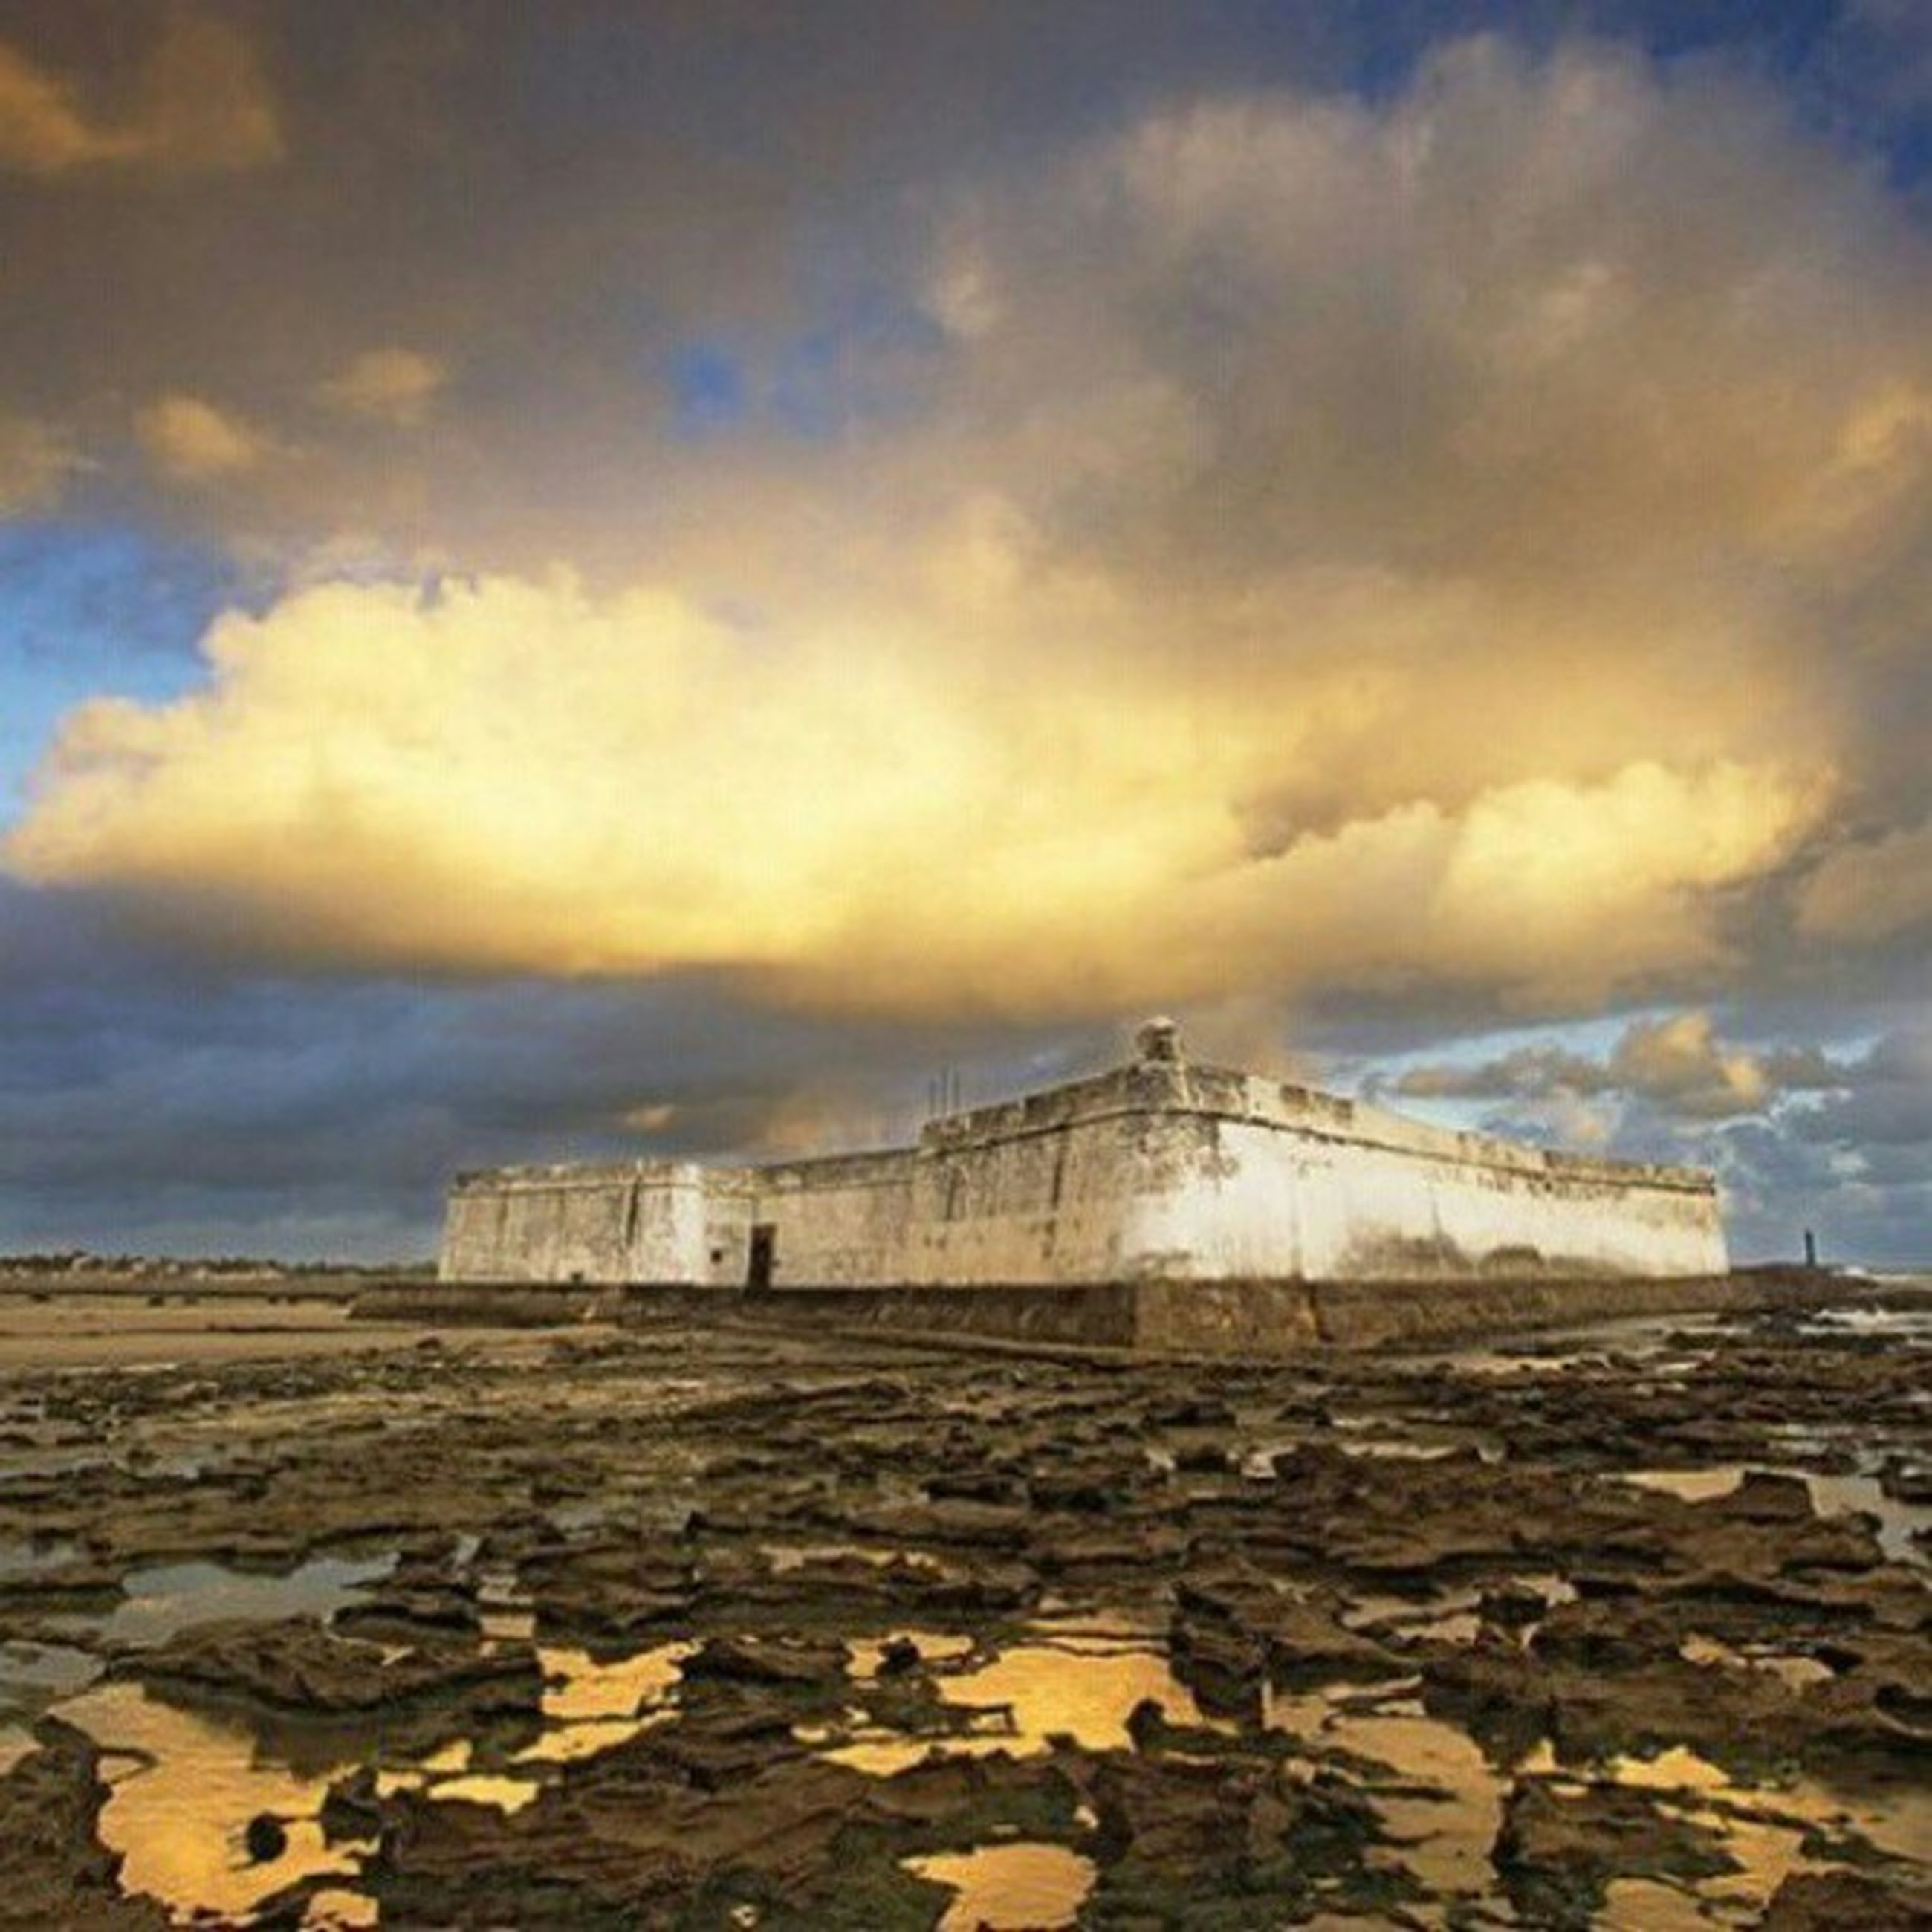 sea, water, sky, horizon over water, sunset, cloud - sky, beach, built structure, shore, scenics, architecture, beauty in nature, nature, tranquility, pier, tranquil scene, cloudy, cloud, idyllic, rock - object